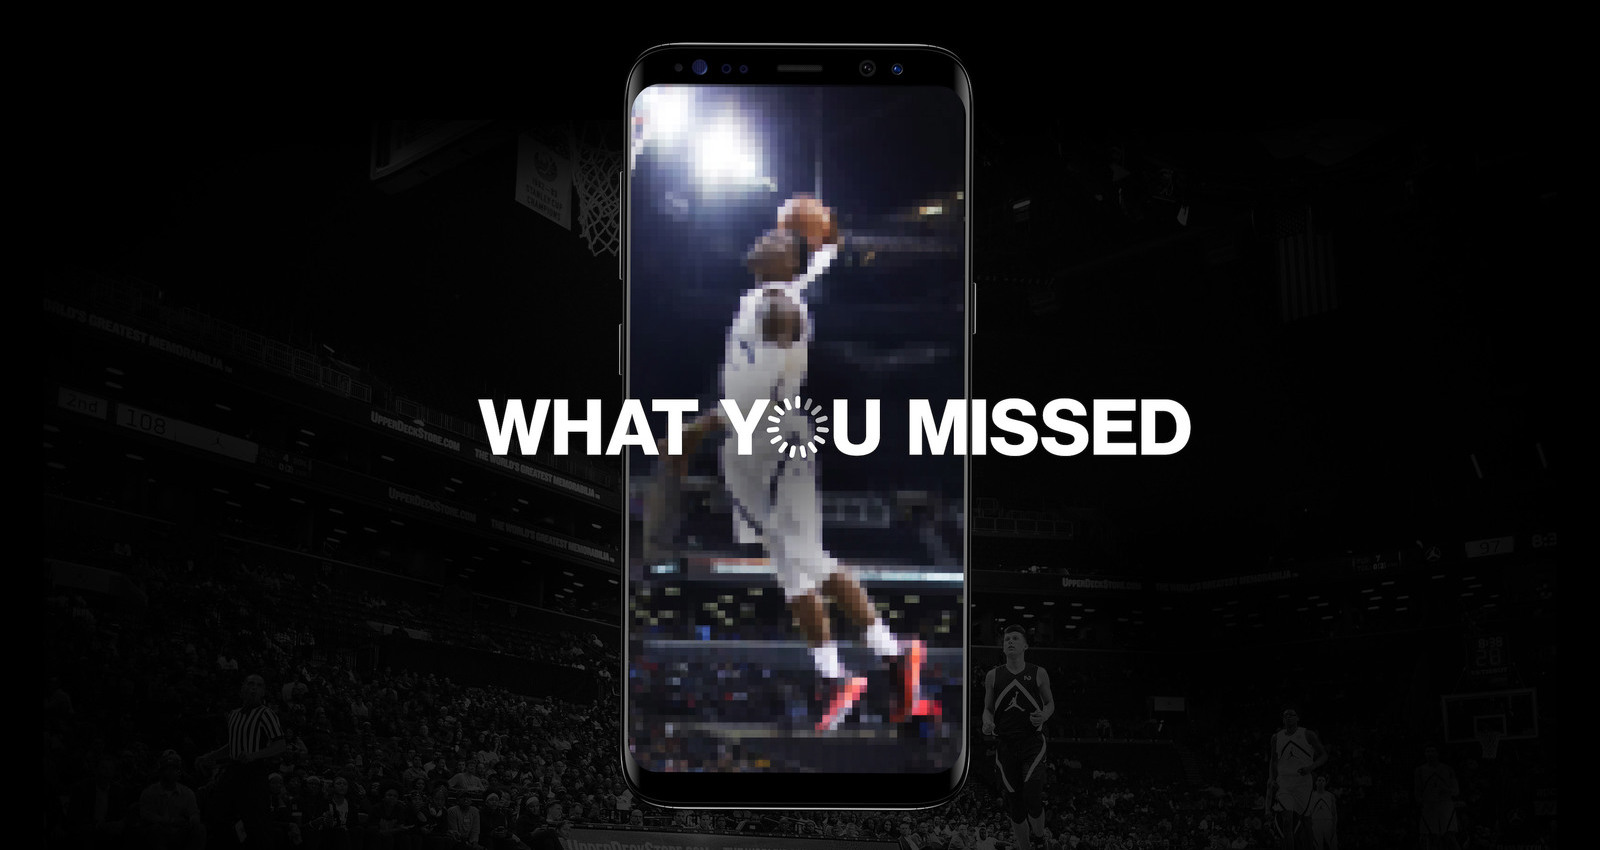 Verizon What You Missed